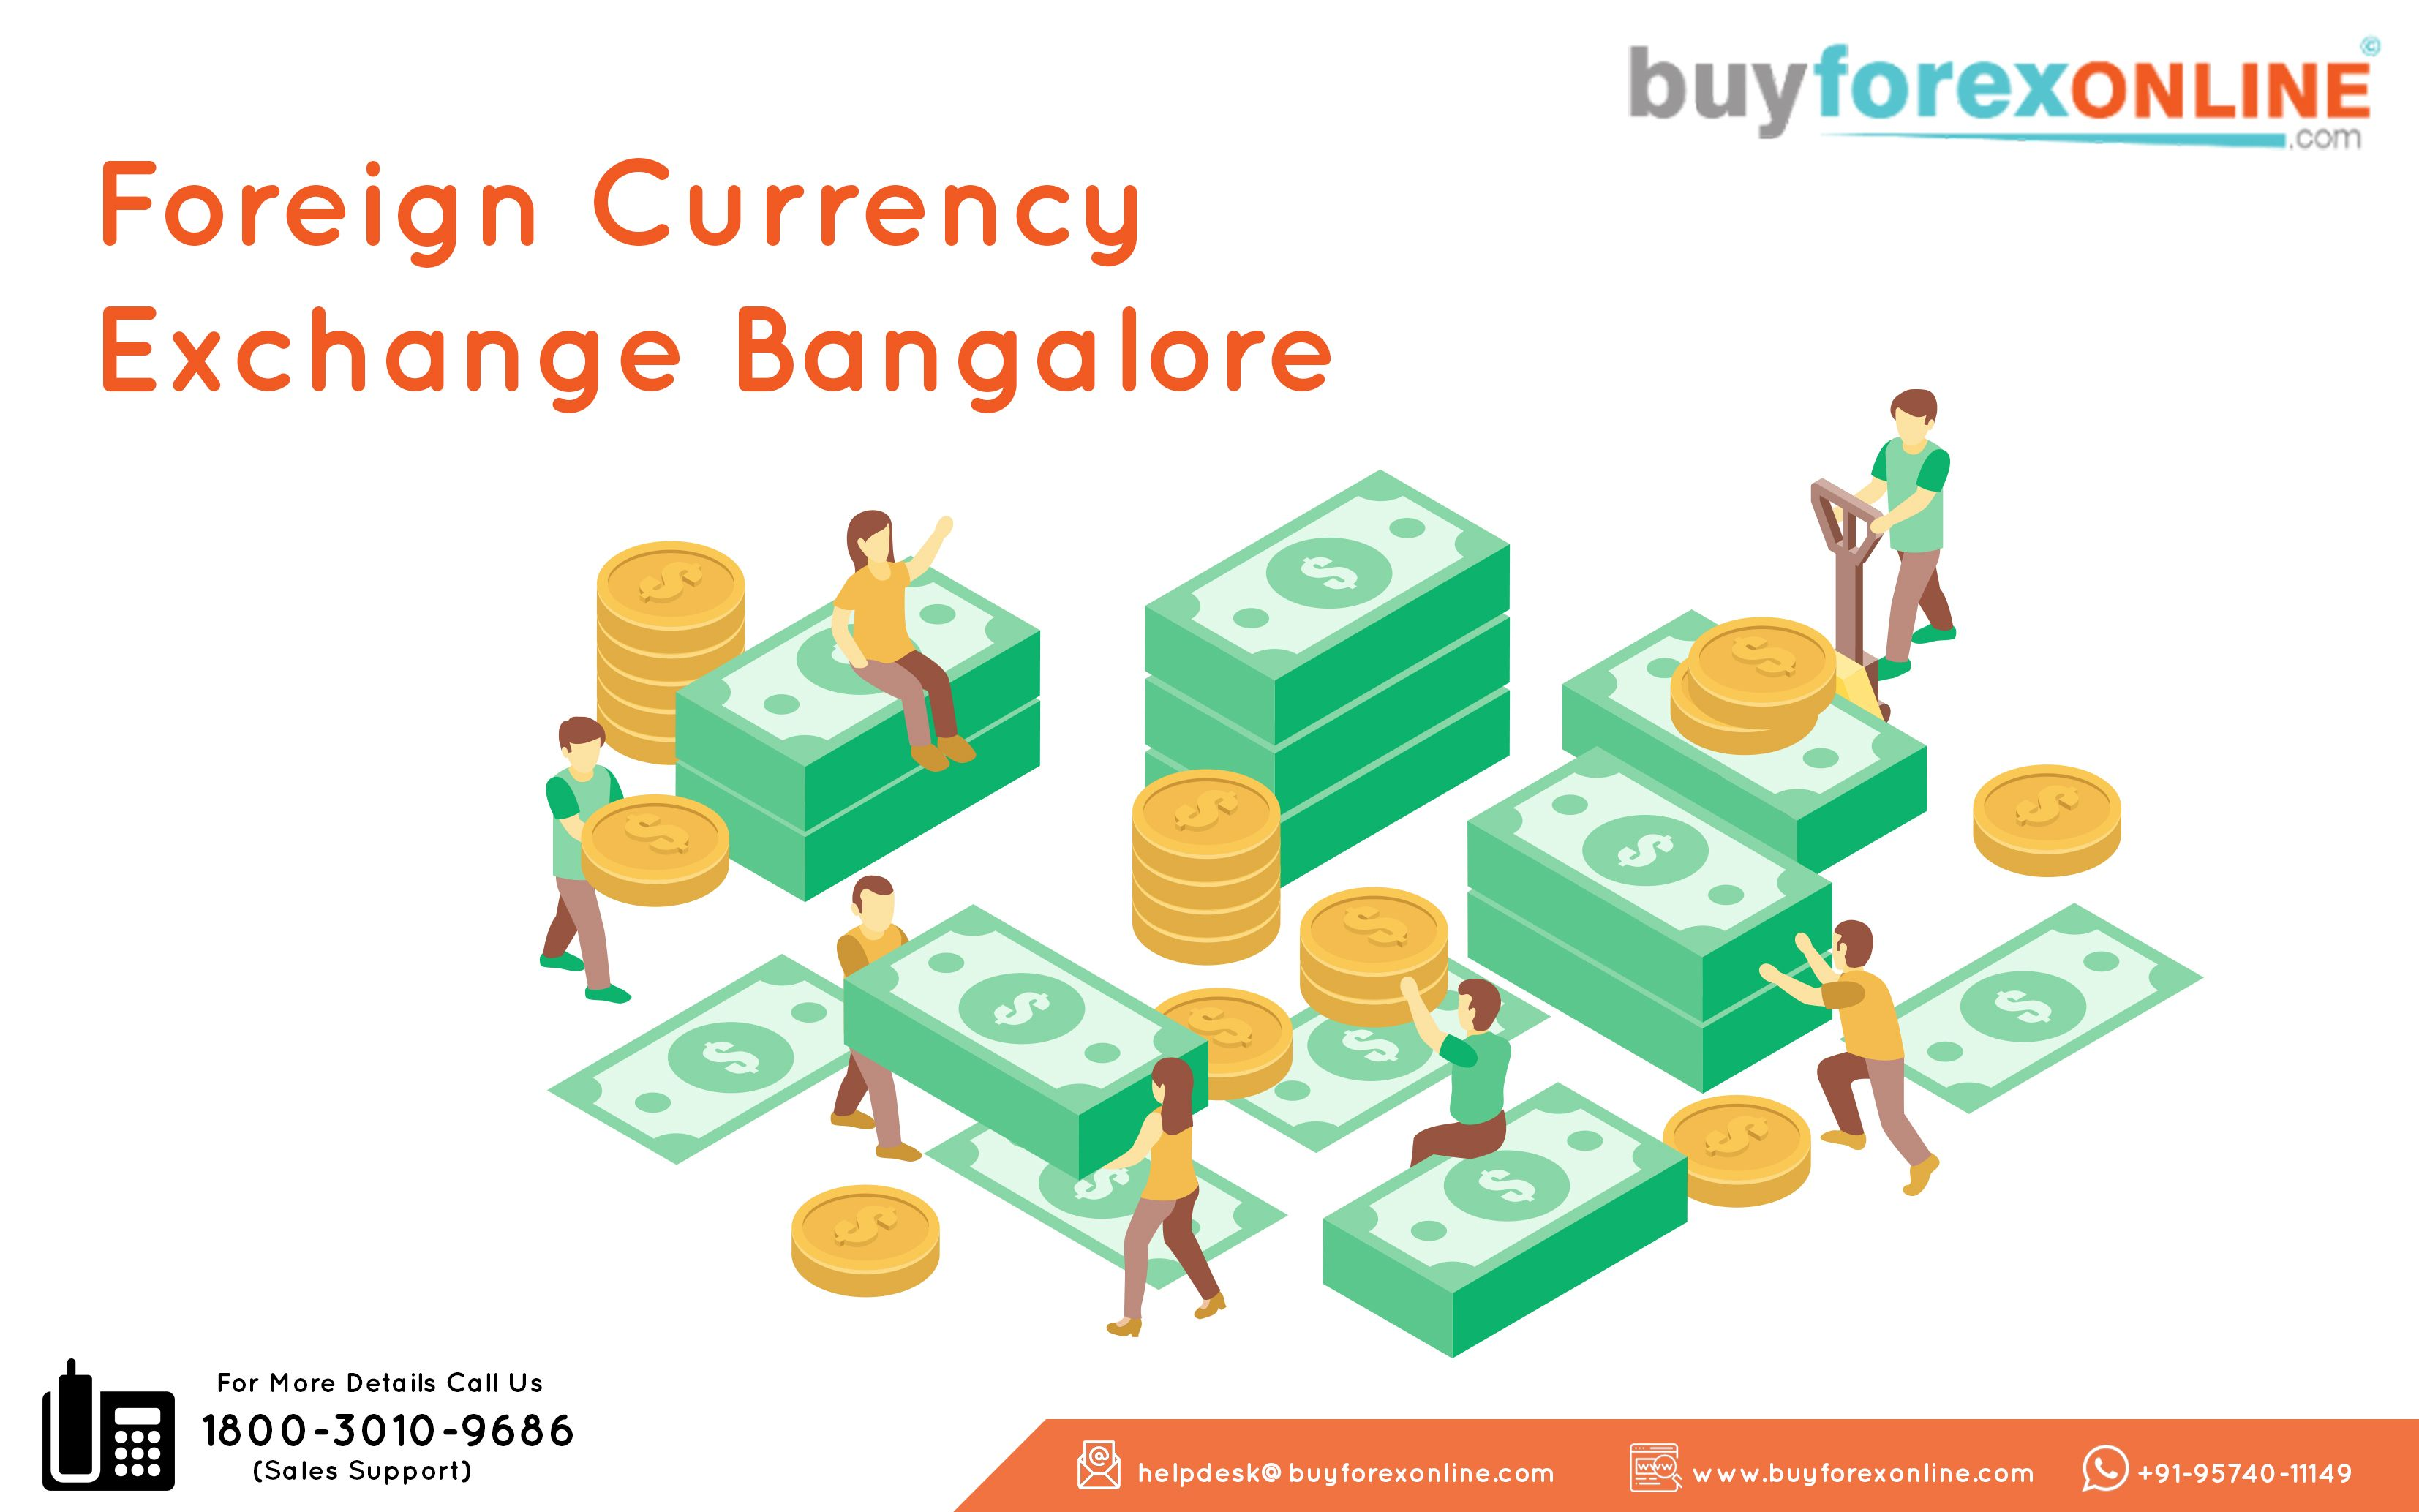 Are You Looking For Best Currency Exchange Rates In Bangalore Forex Online Is A Place Where Can Purchase Your Transpa Manner